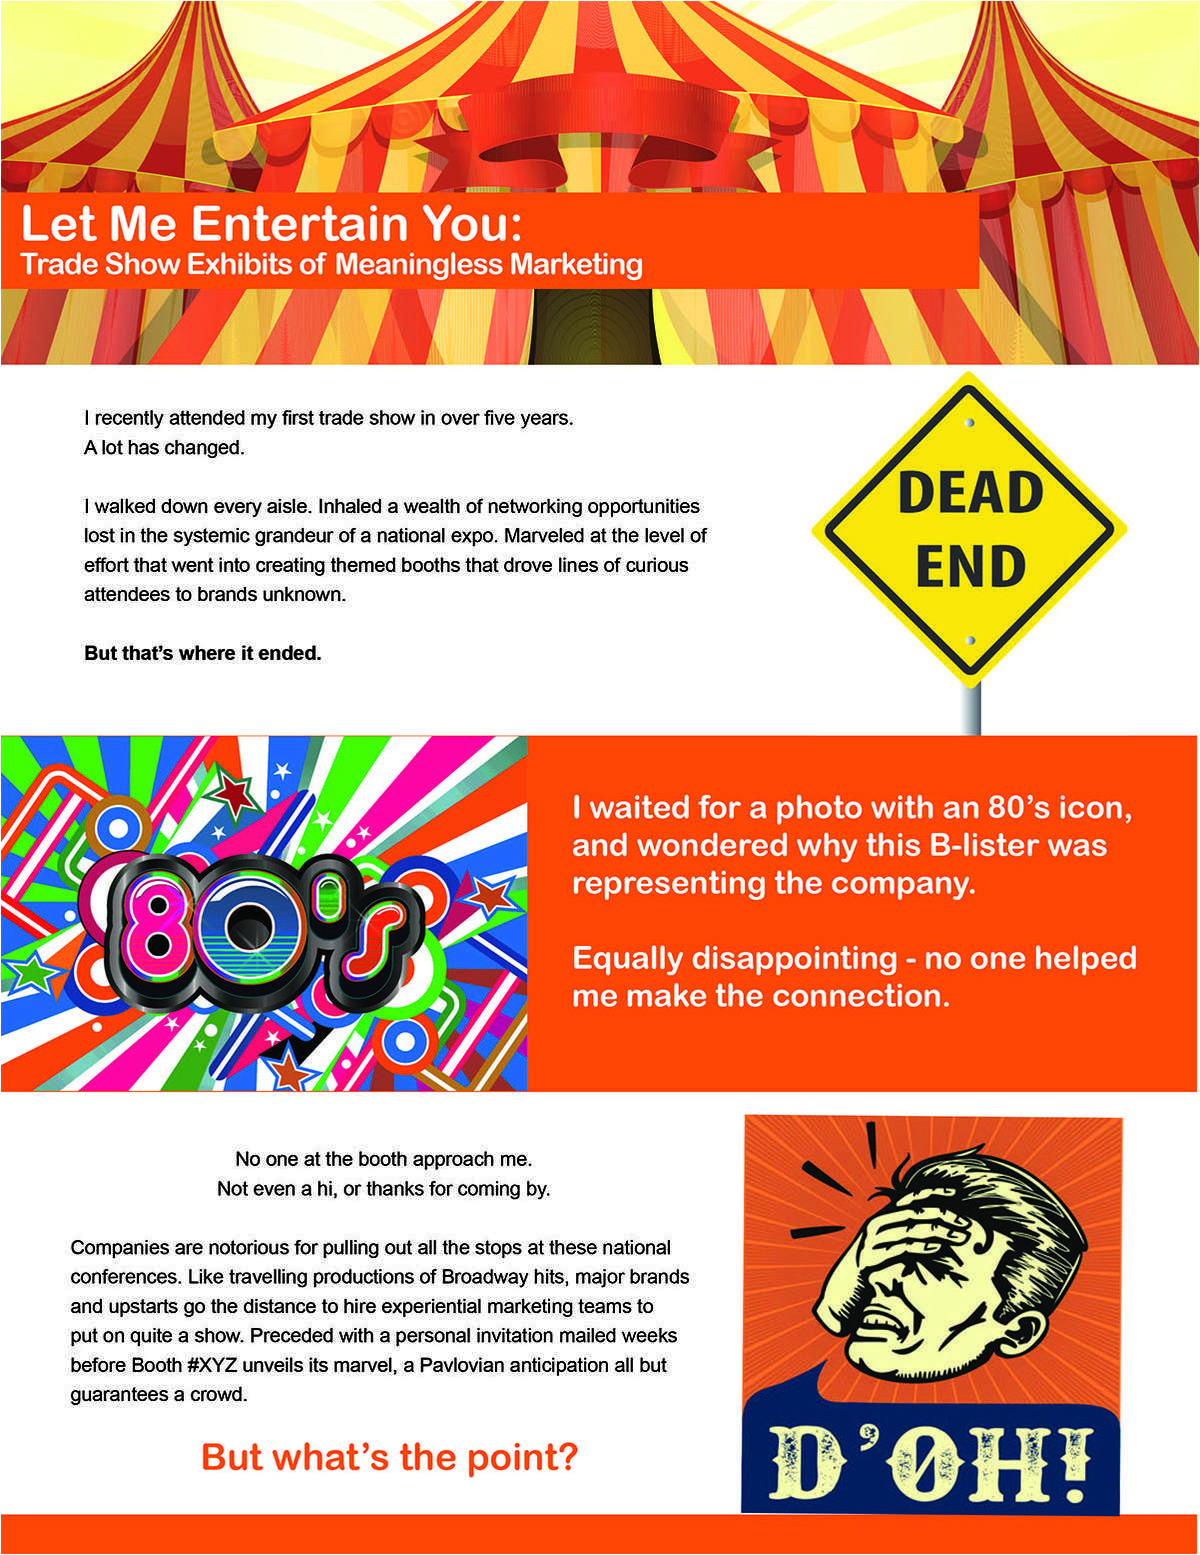 Let Me Entertain You: Trade Show Exhibits of Meaningless Marketing